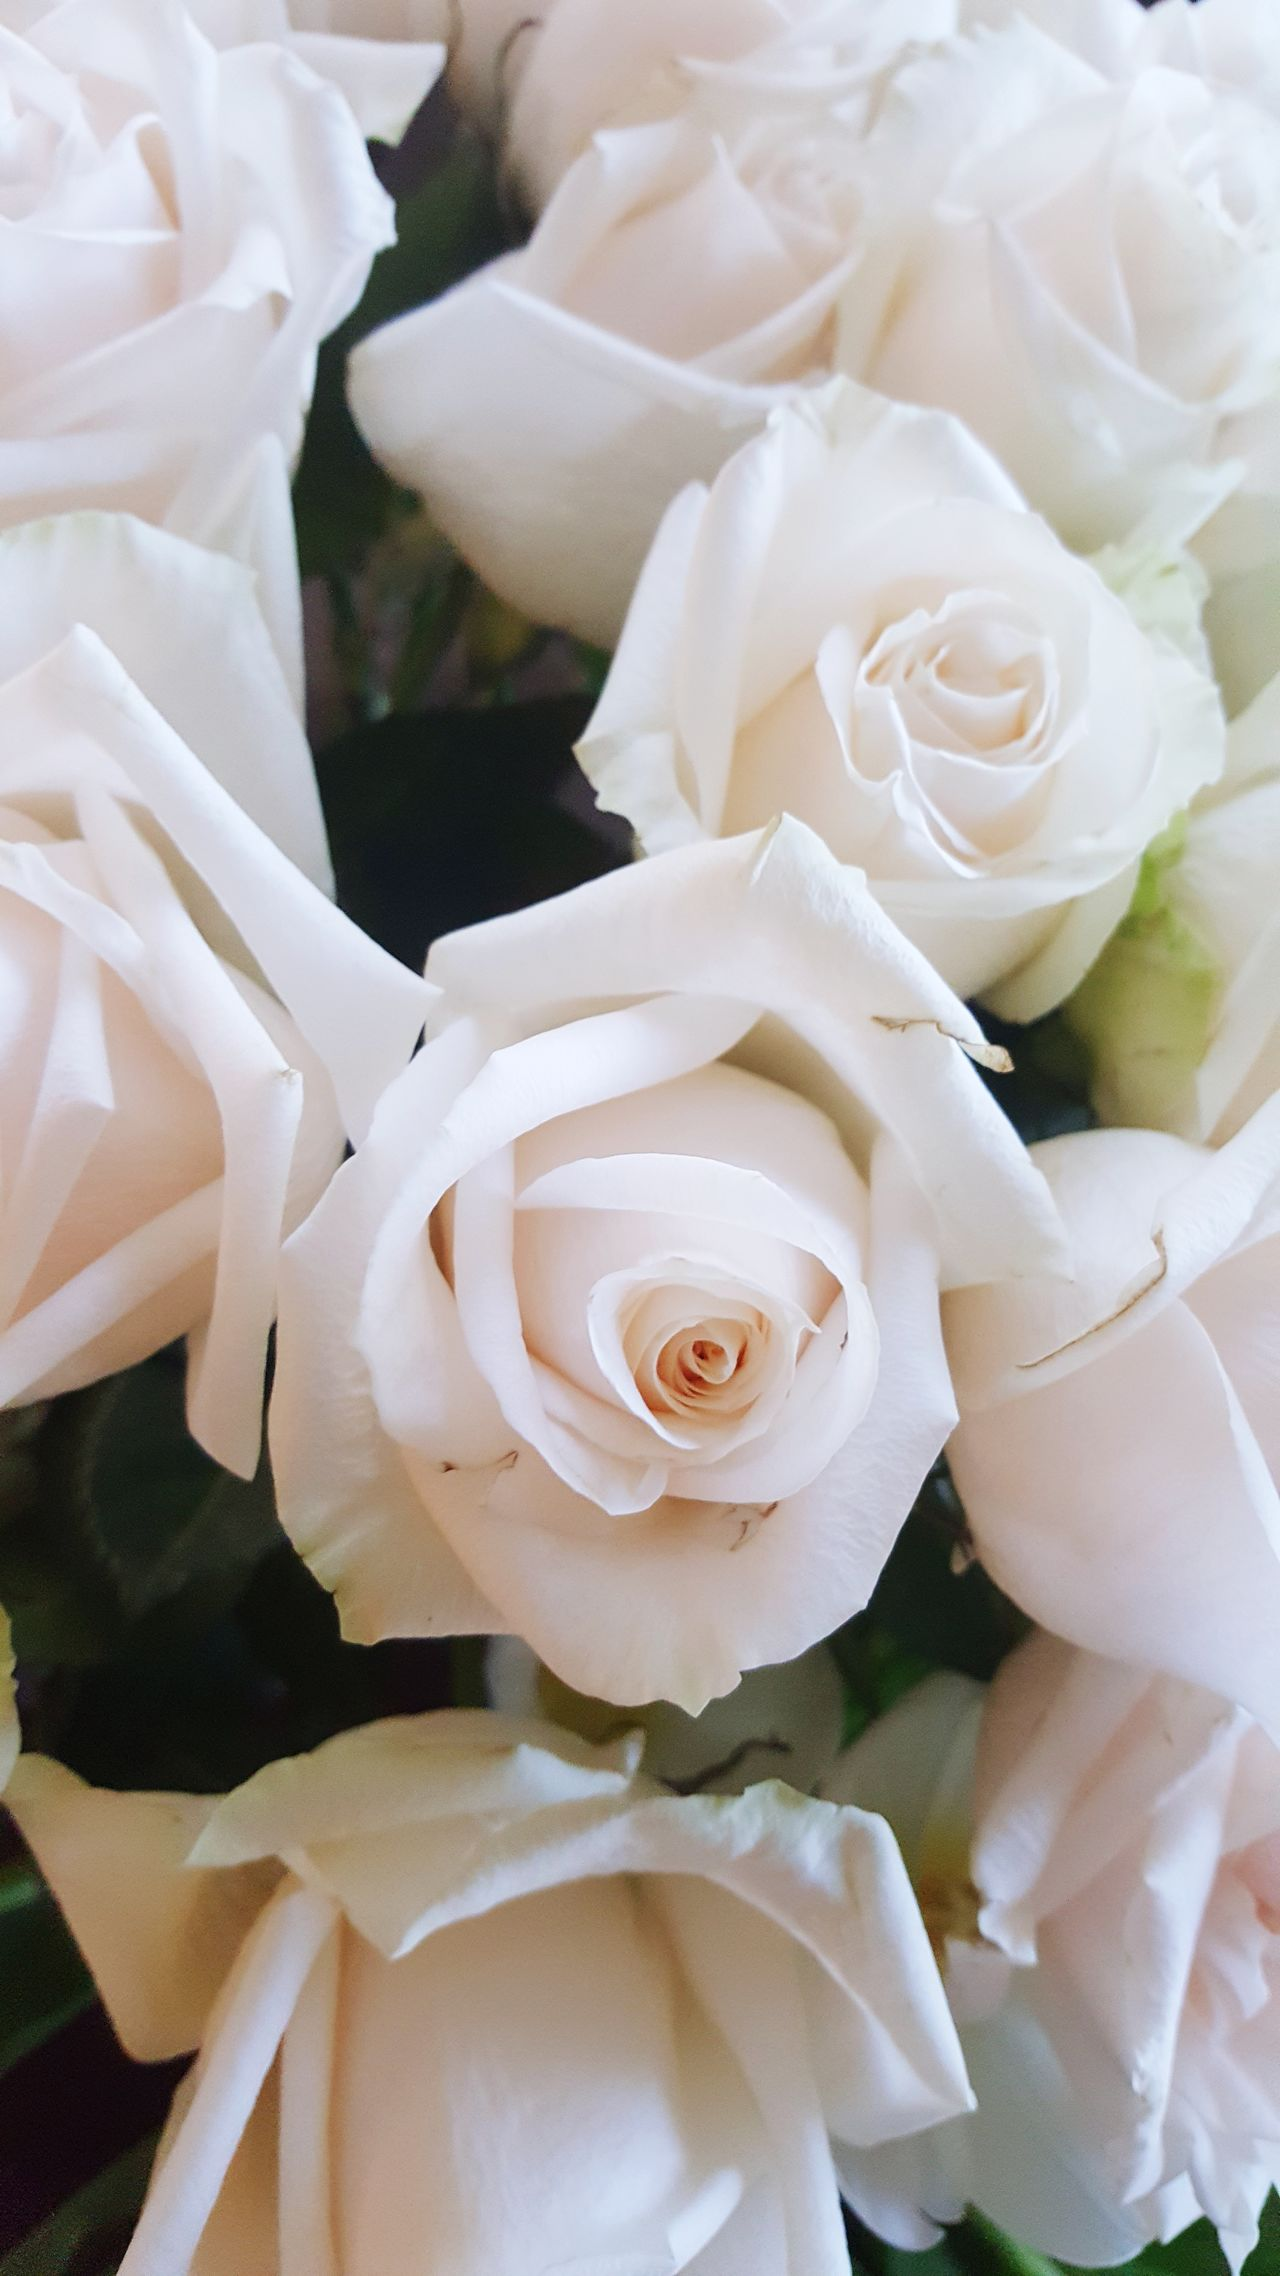 In the language of flowers, White Roses mean both secrecy and innocenceBeauty In Nature Rose - Flower Flower Full Frame No People Indoors  Nature Flower Head Close-up Day Rosé White Languageofflowers Innocence Secret Secrecy White Color White Rose